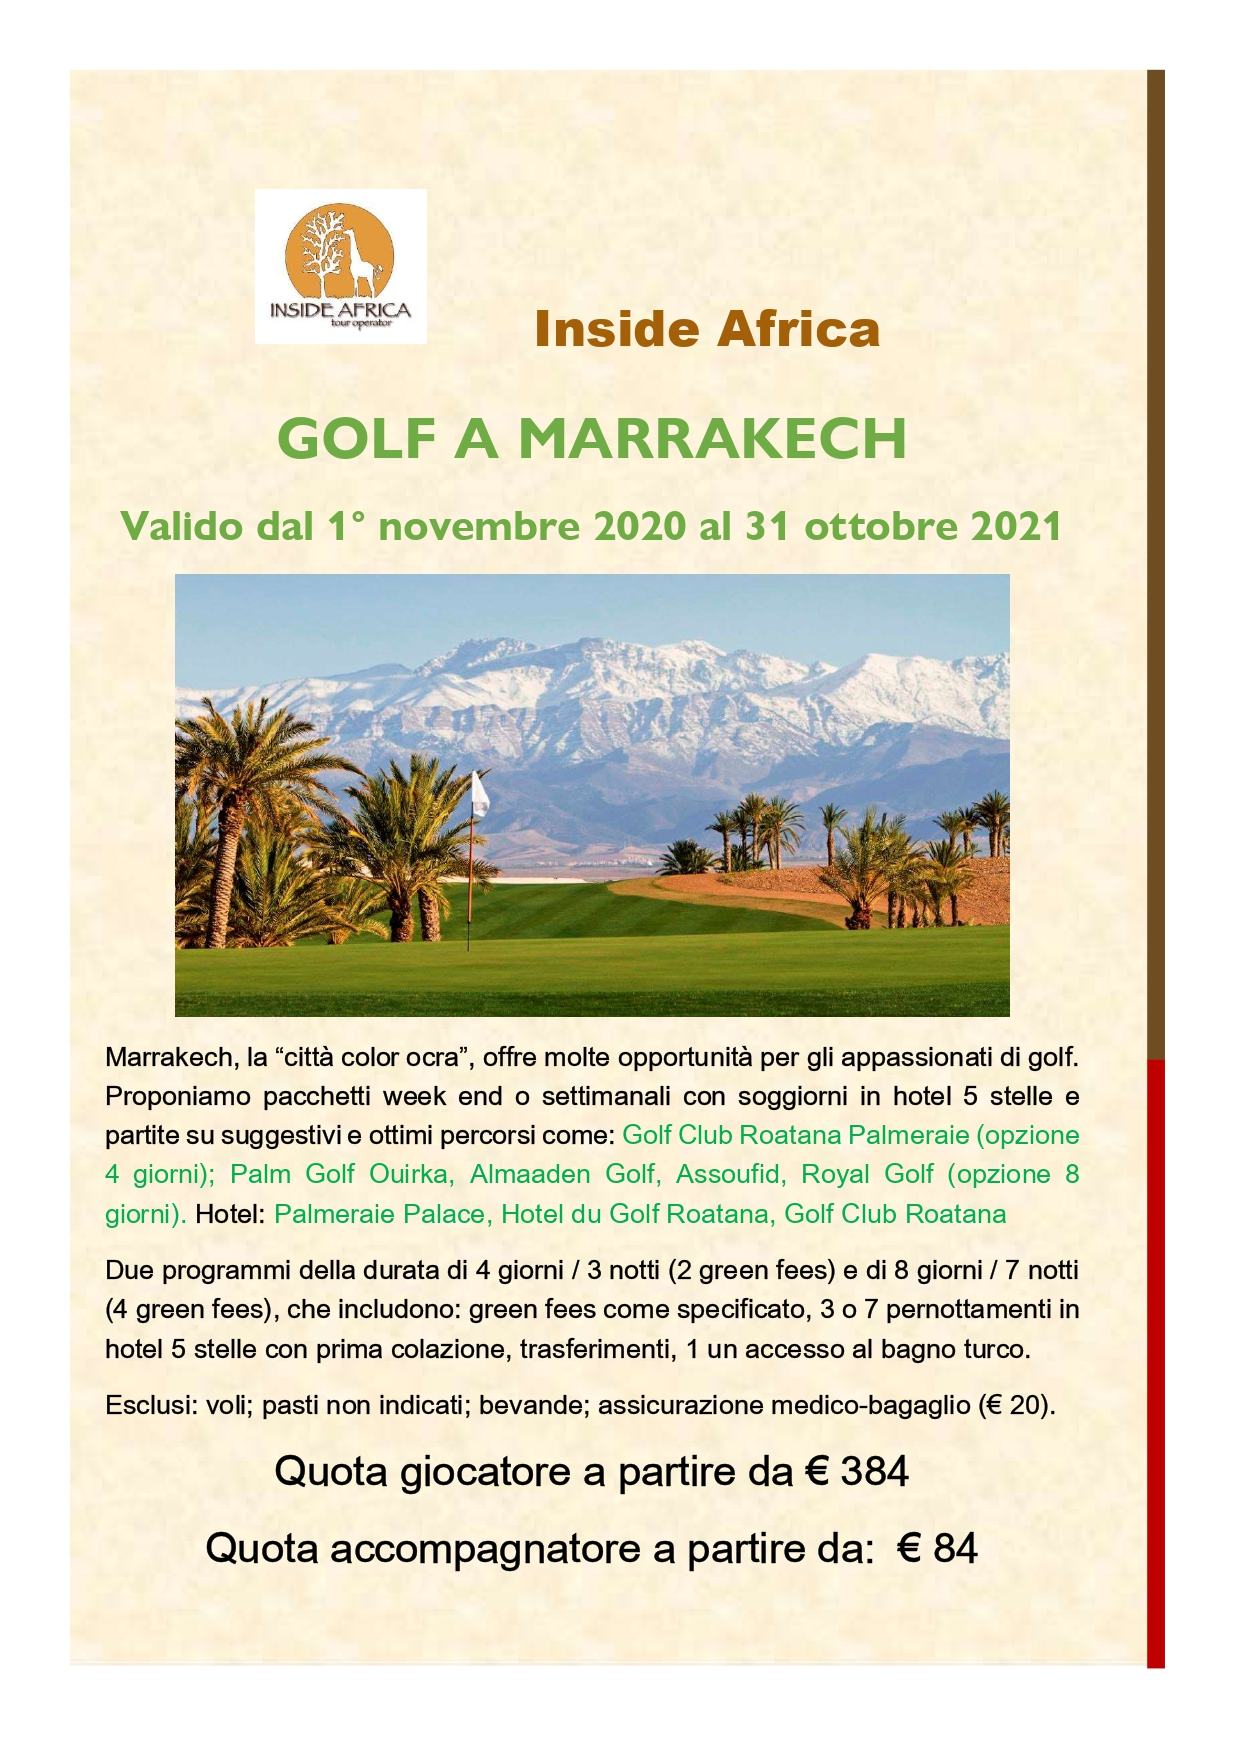 marocco-golf-a-marrakech-2021-jpg